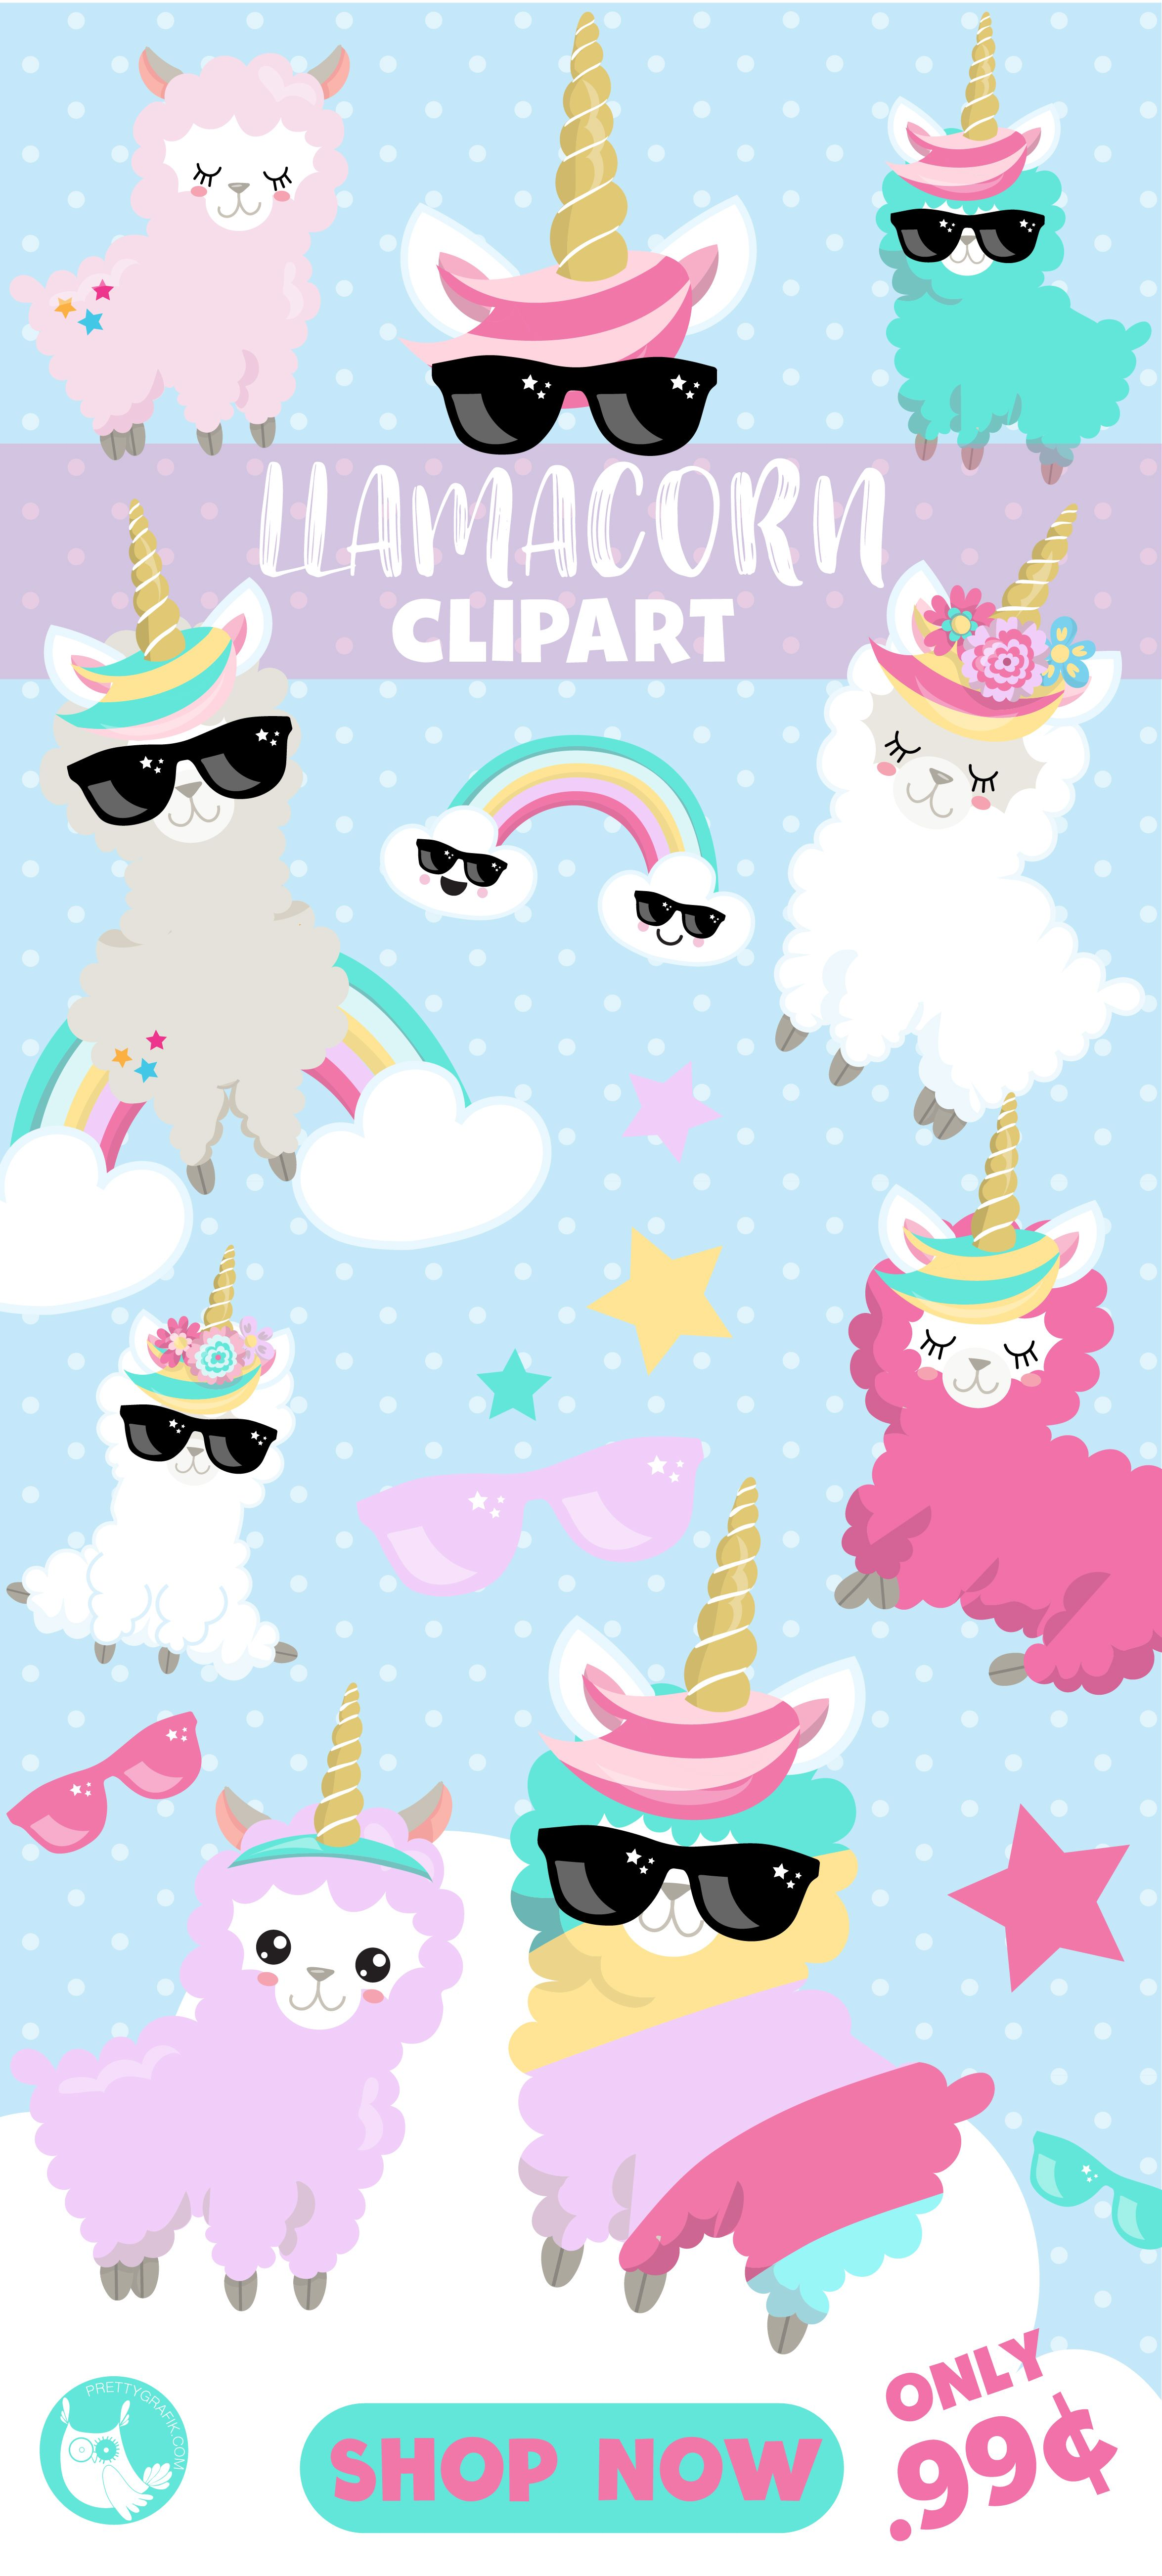 llamacorn llama clipart are only 99 and are great to use as party decorations for a llama themed birthday party  [ 2350 x 5209 Pixel ]